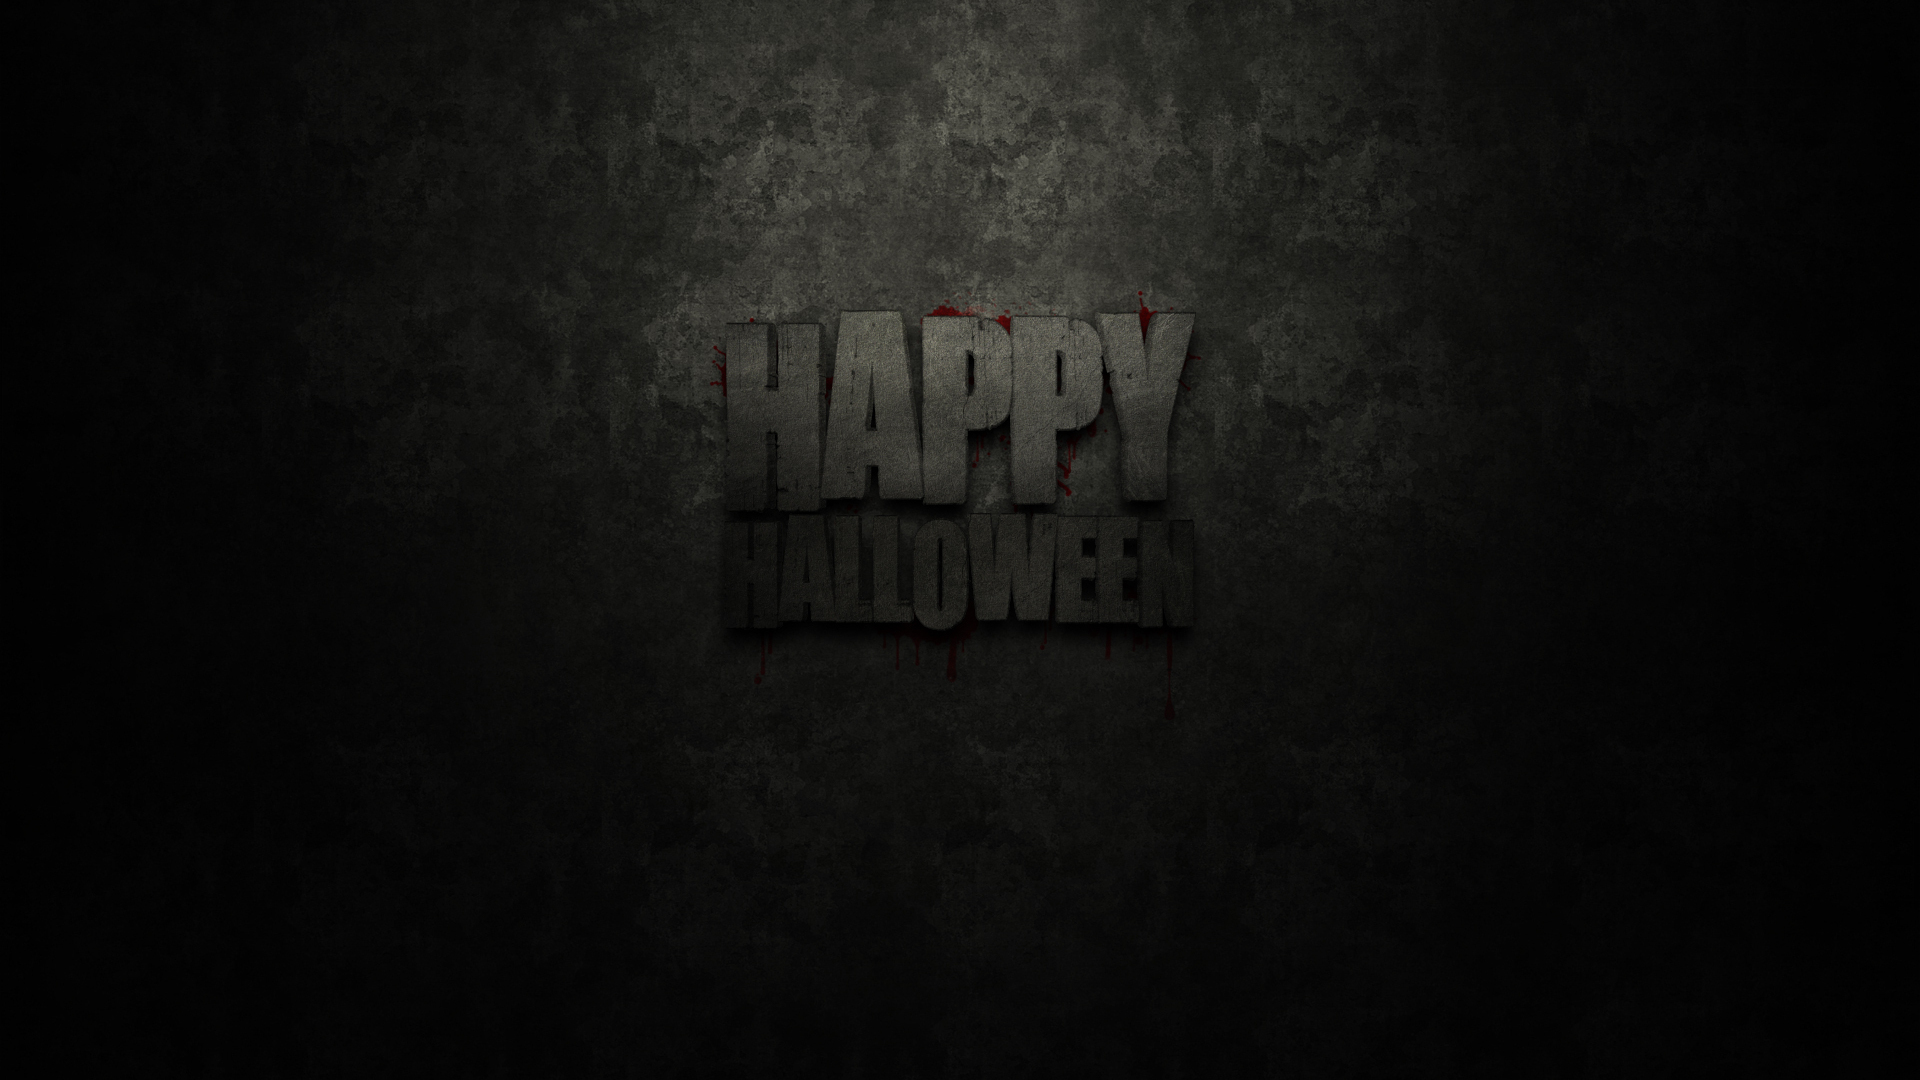 happy-halloween-heluin-lettering-texture-background-dark-hilarious